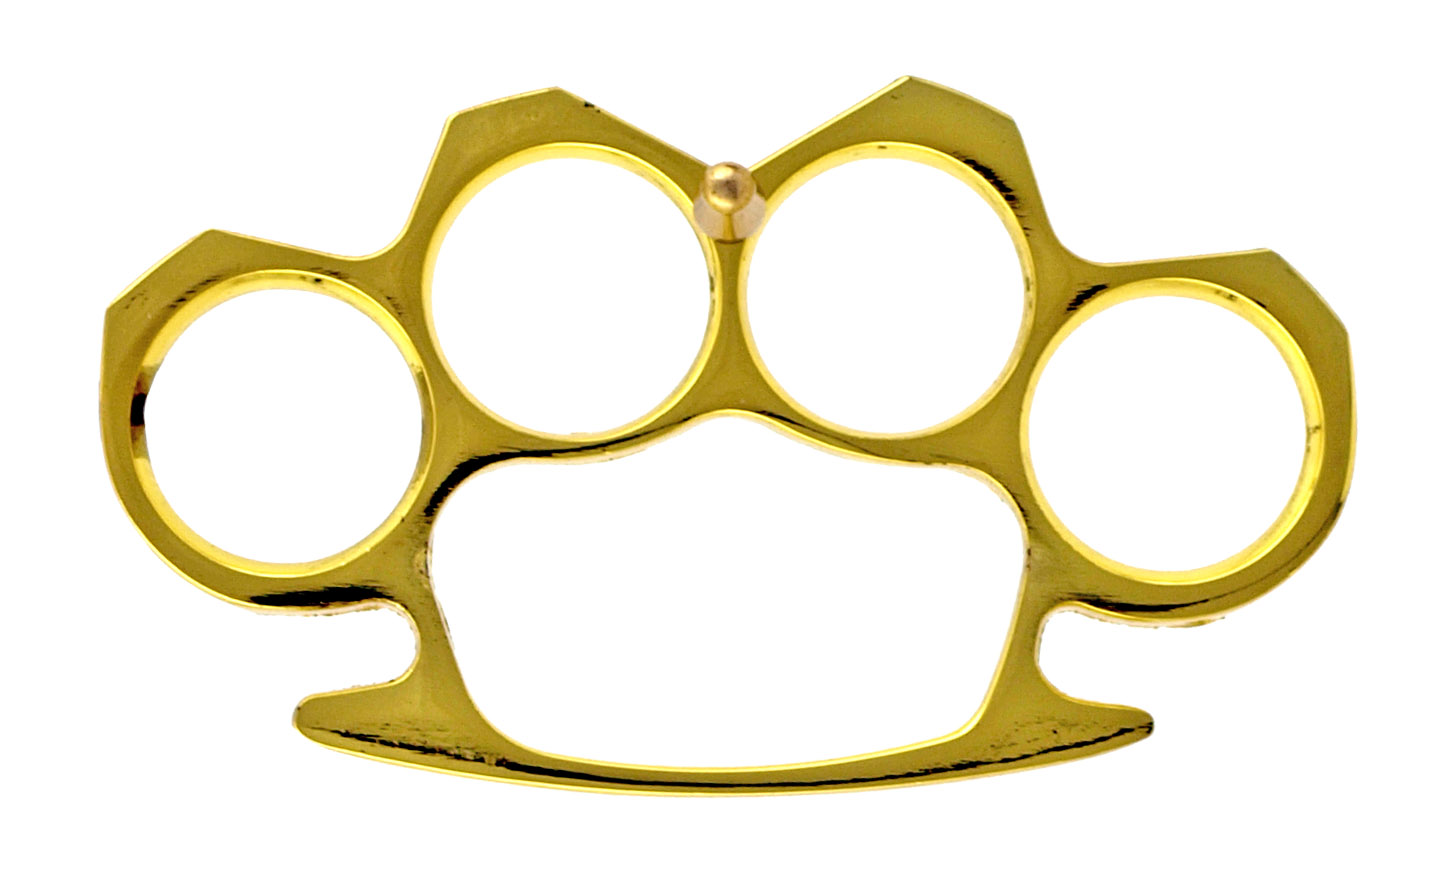 Brass Knuckle Styled Belt Buckle with Prong Attachment - Golden